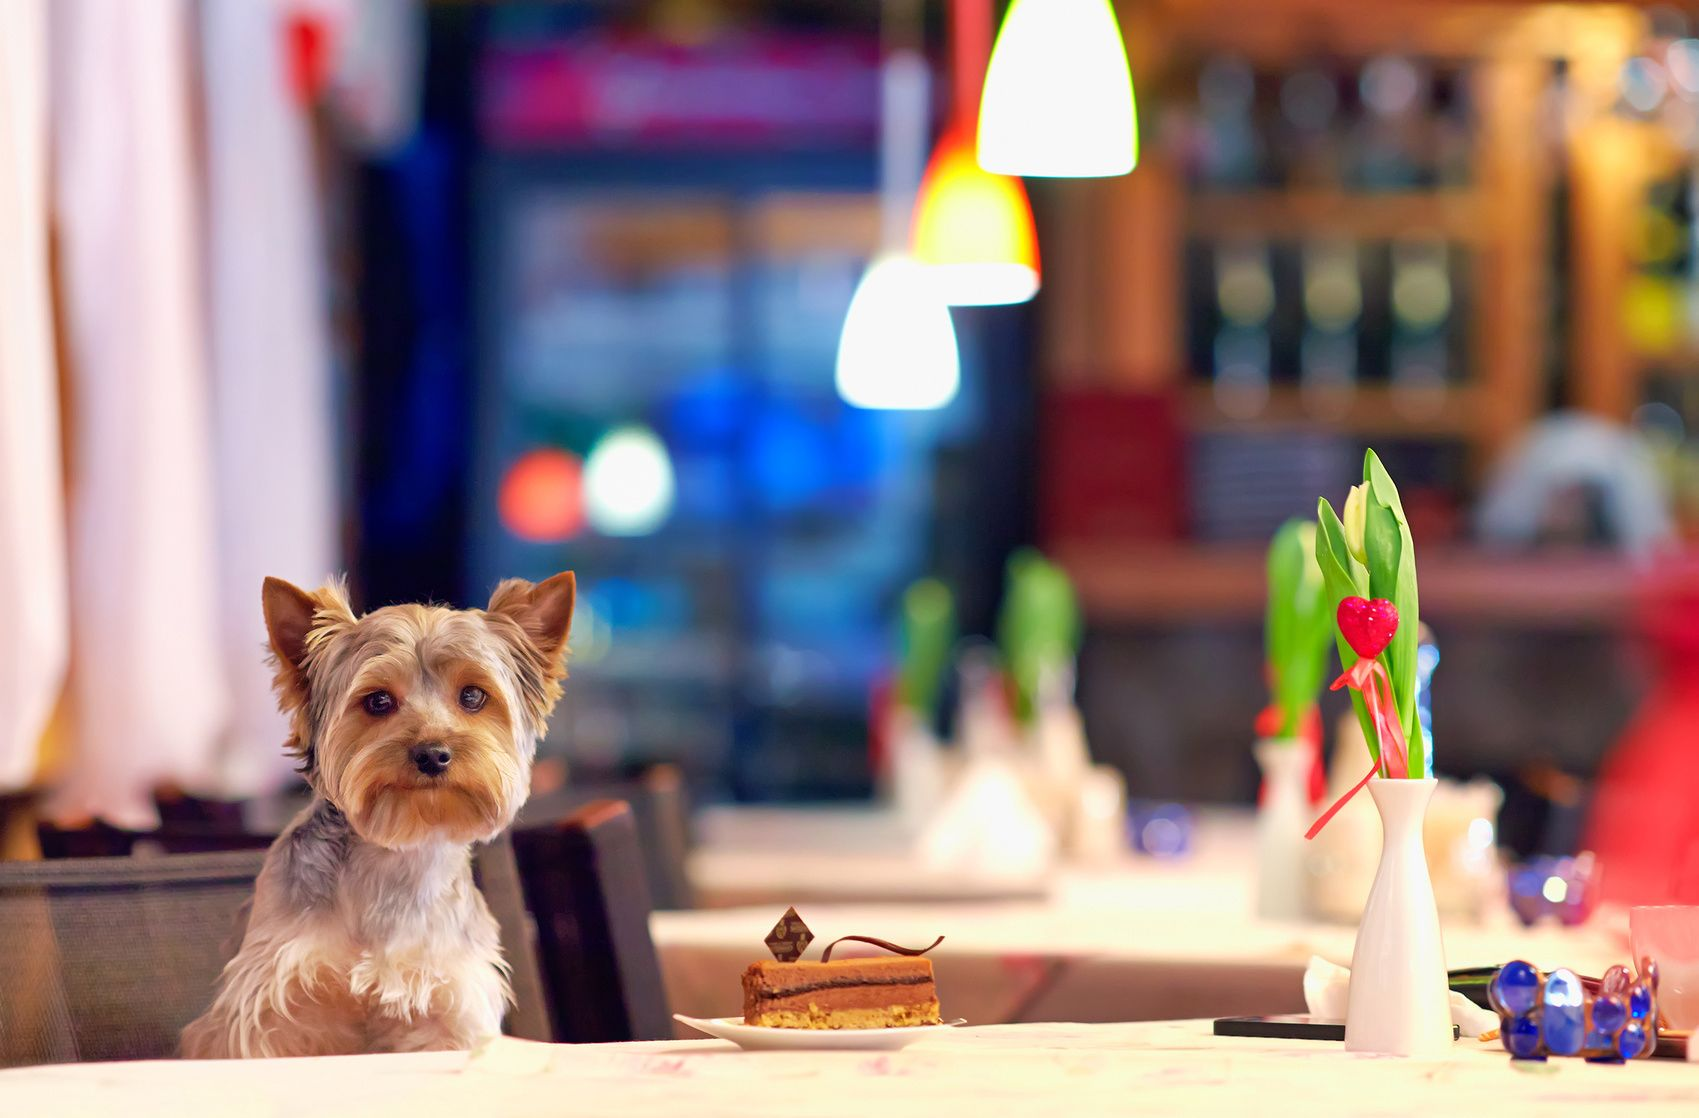 Yorkshire terrier enjoying dessert in cafe